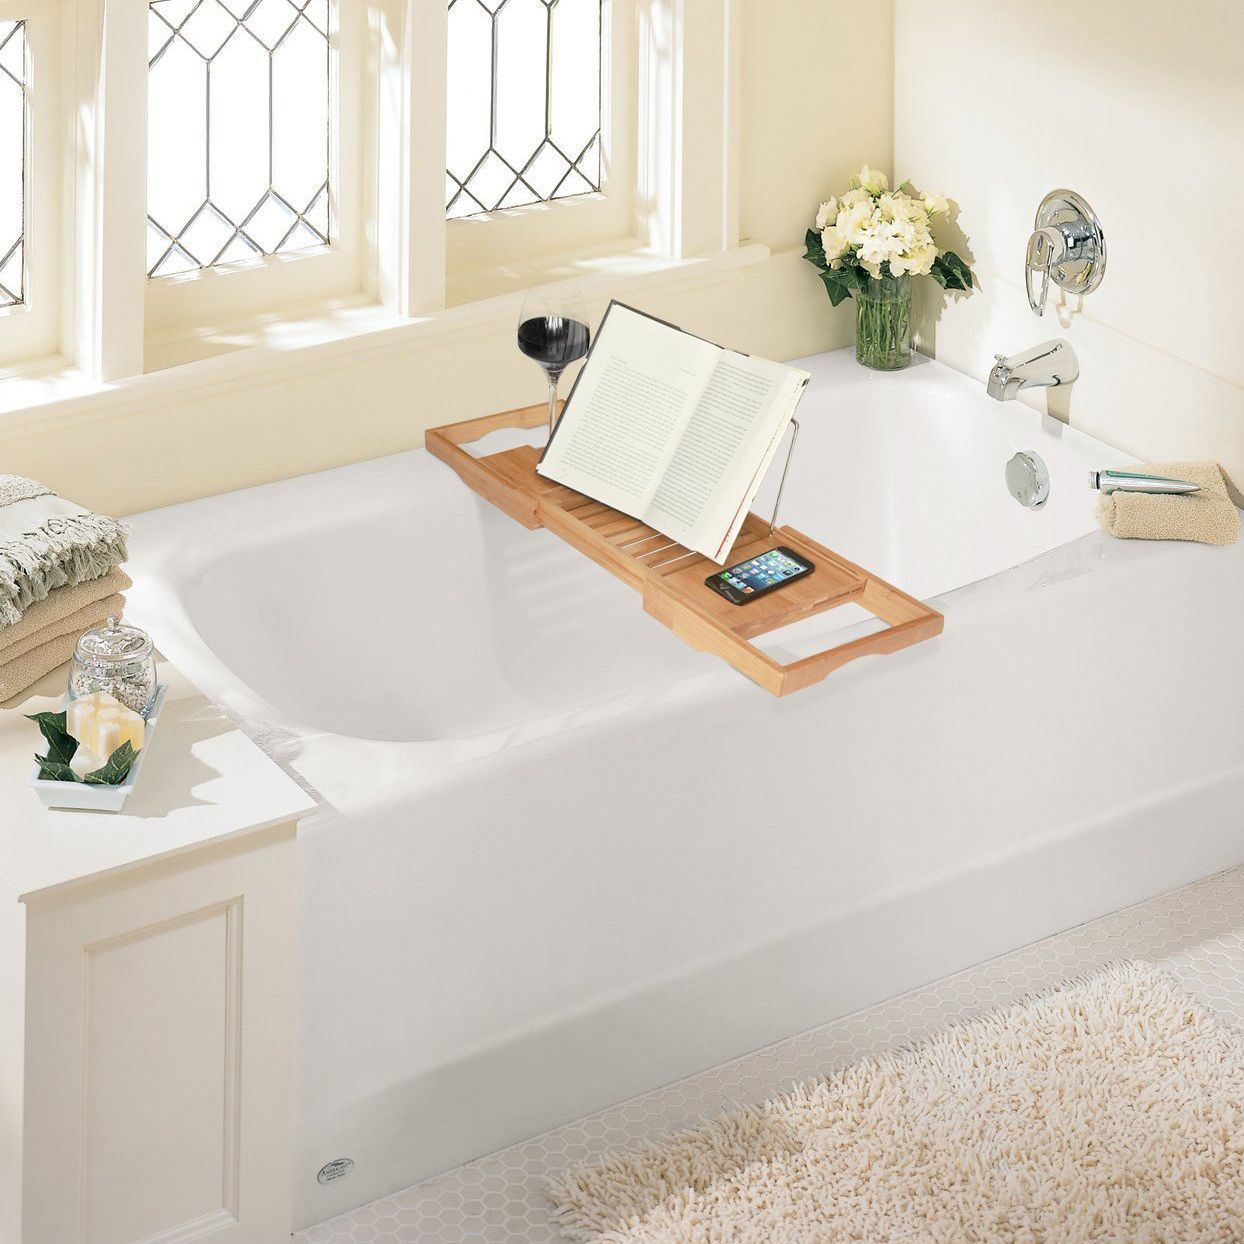 Supreme Bath Caddy Tray | For the Home | Pinterest | Bath caddy ...